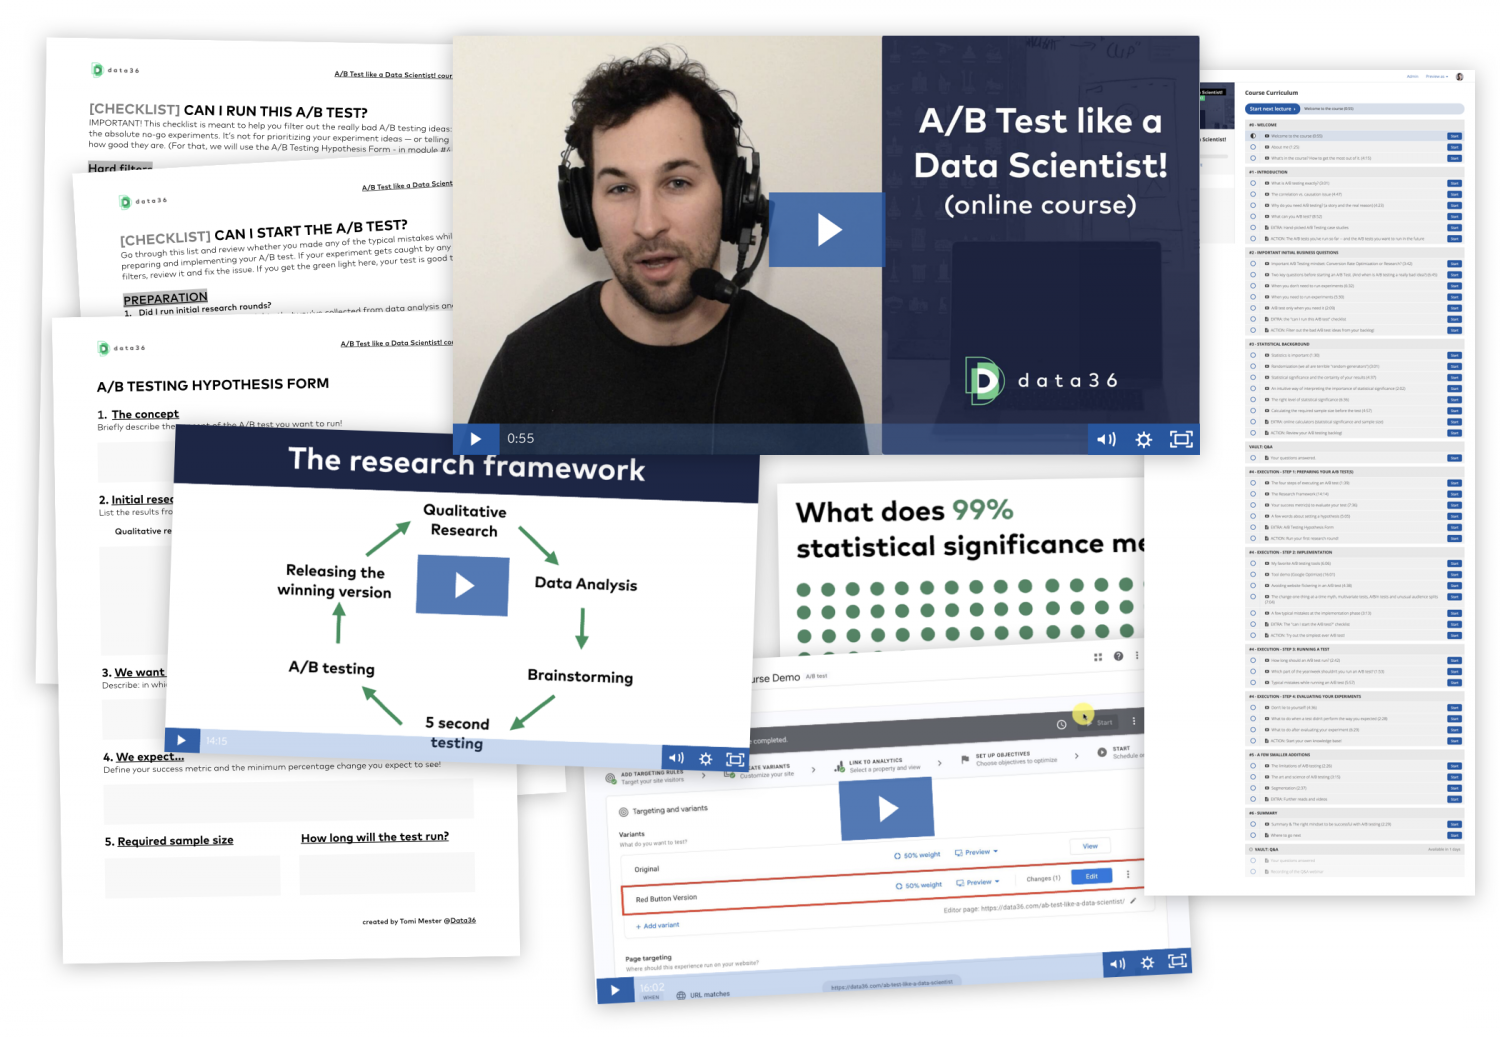 ab testing course content